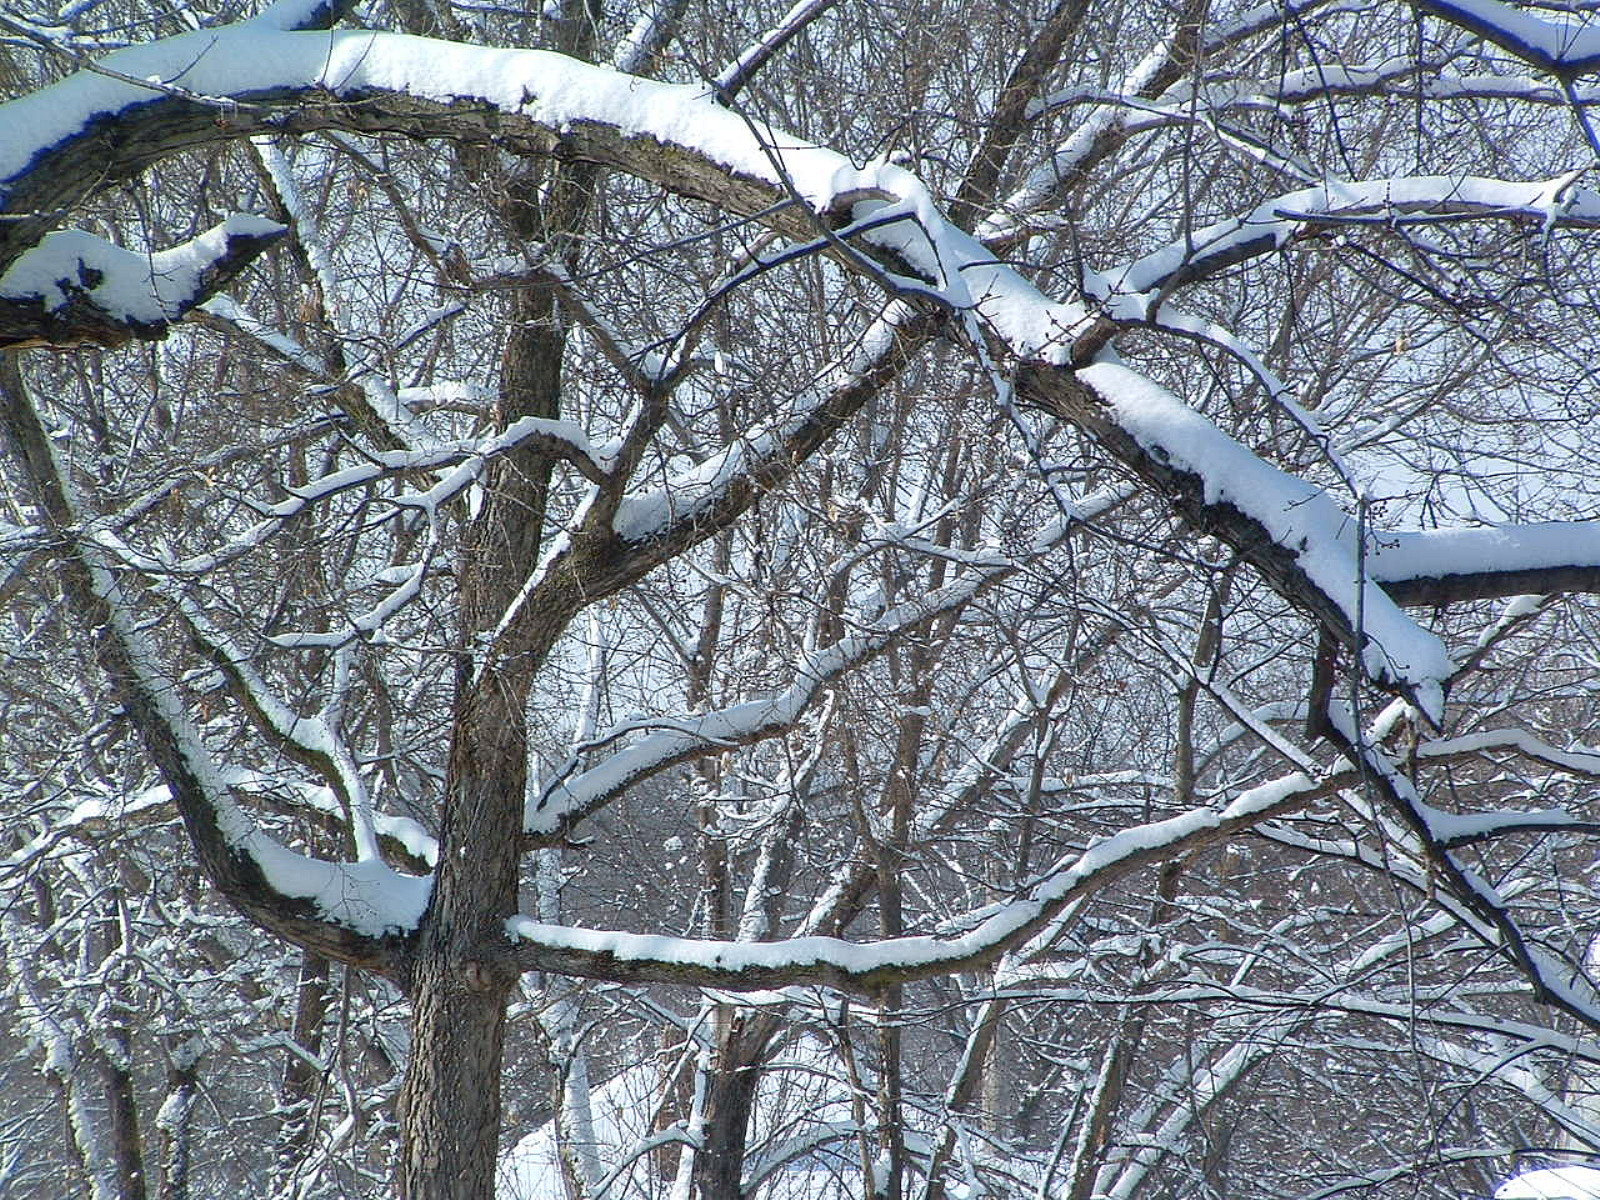 Weighted Limb, Branches, Cold, Con0207, Snow, HQ Photo